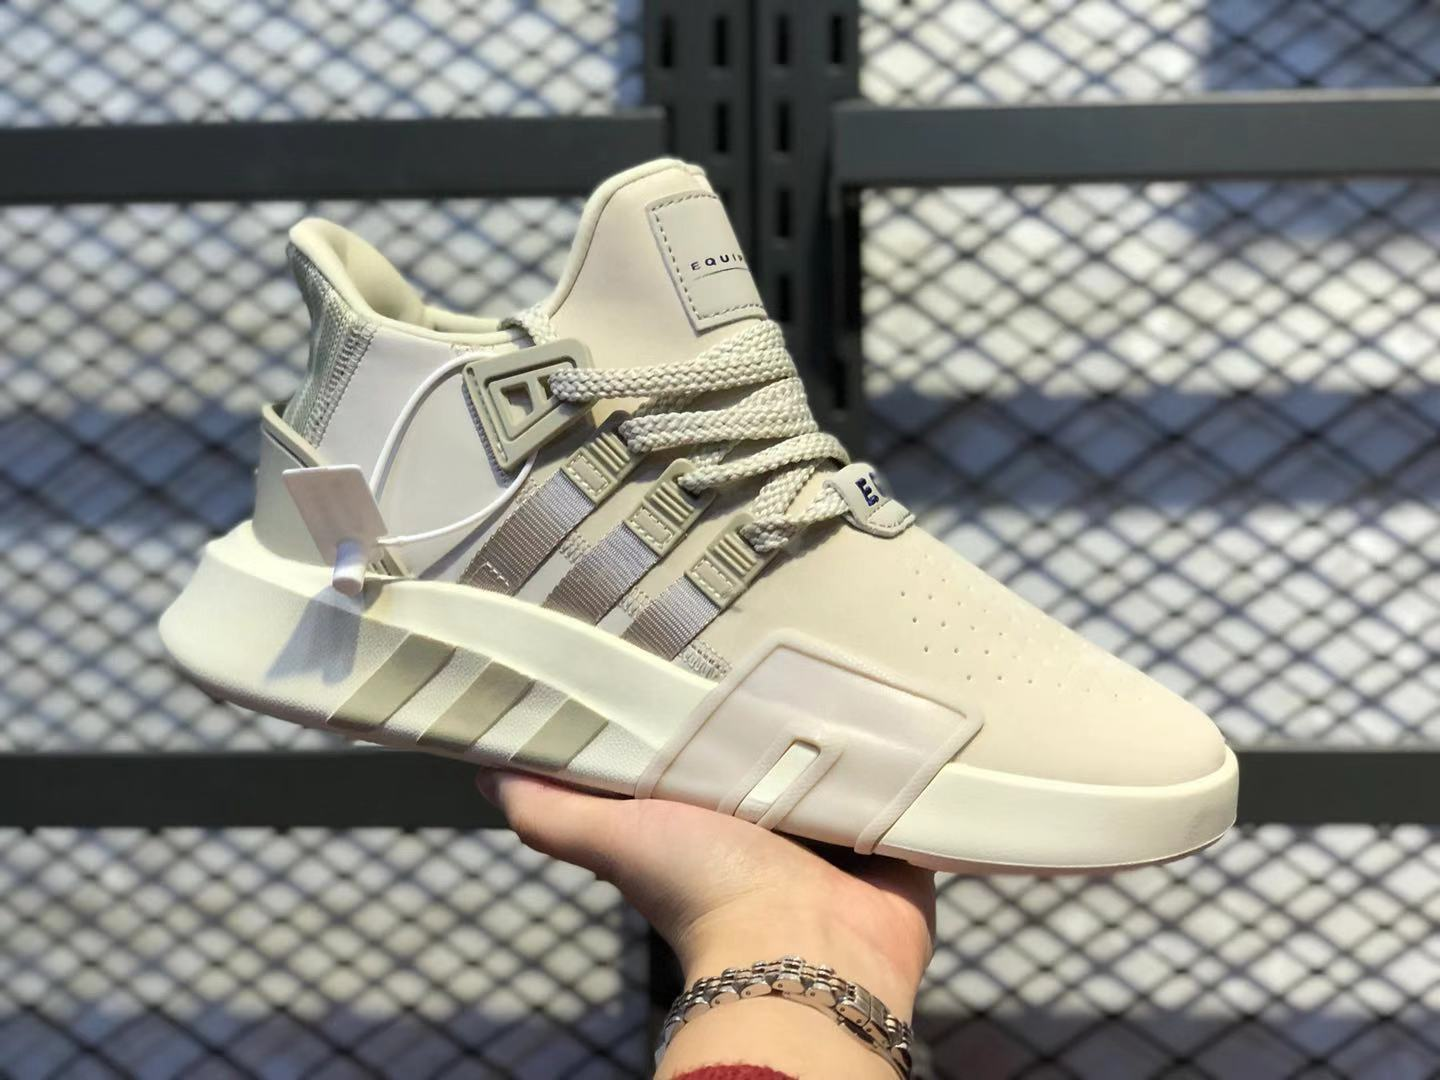 Adidas EQT Basketball ADV Cream White/White Shoes BD7812 For Online Sale